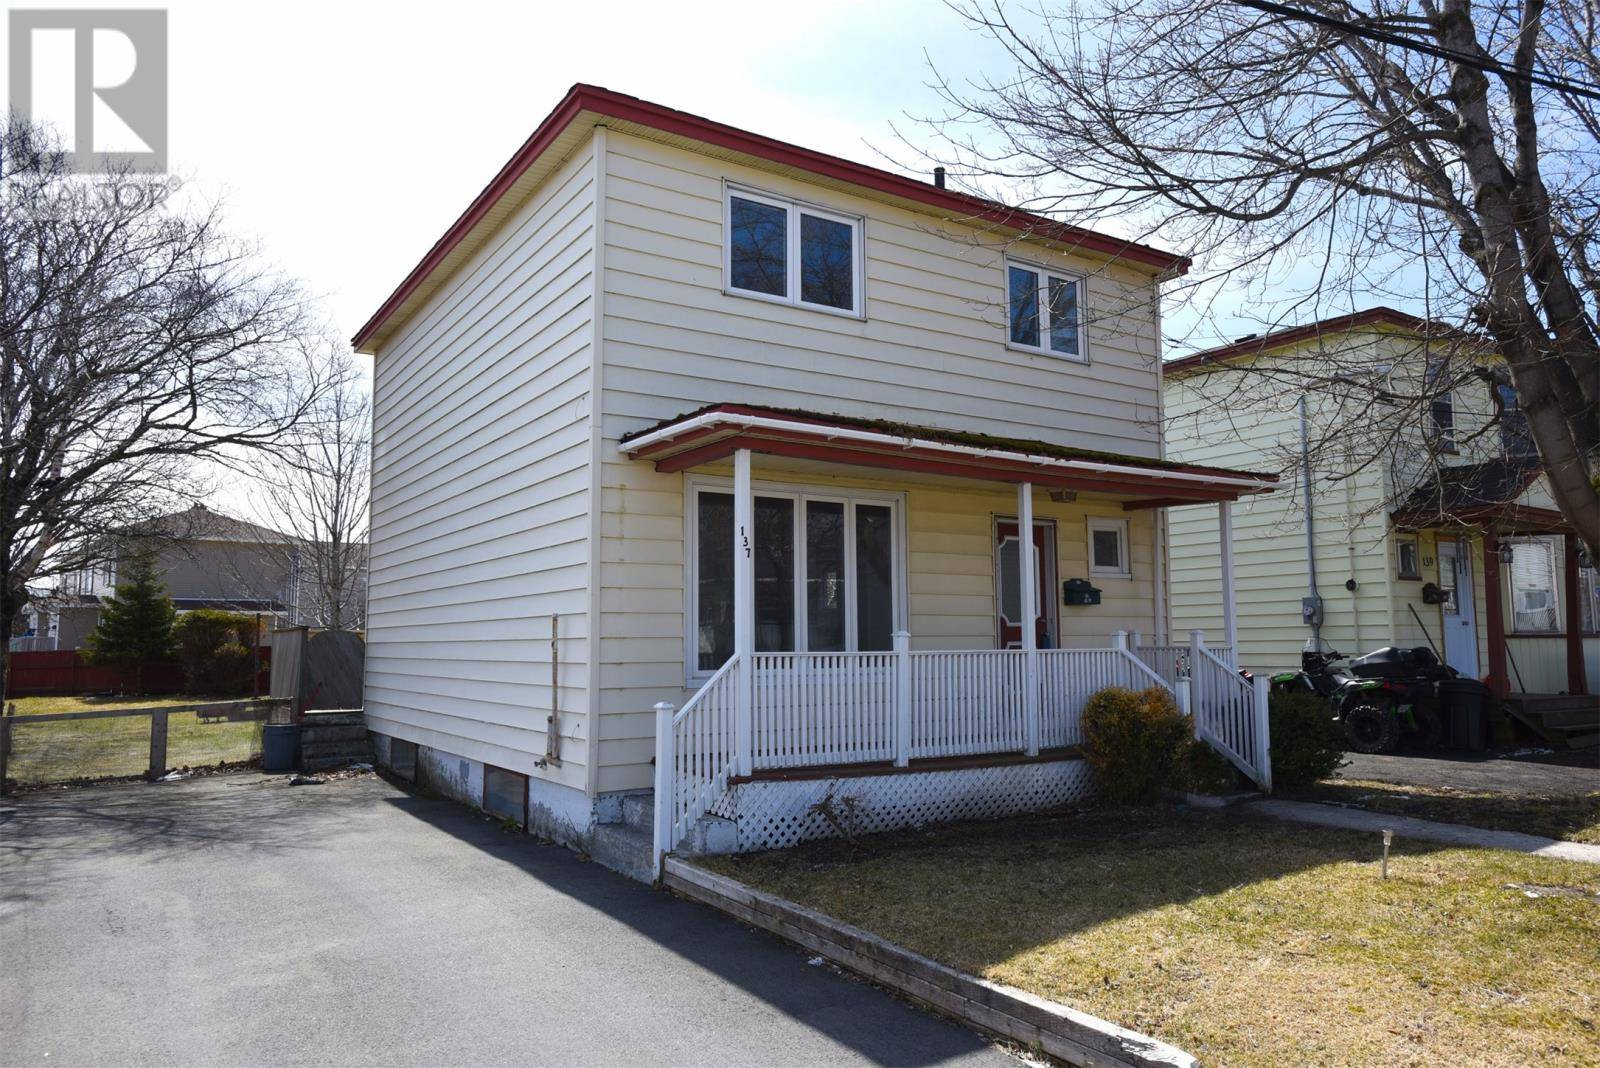 House for sale at 137 Campbell Ave St. John's Newfoundland - MLS: 1200449